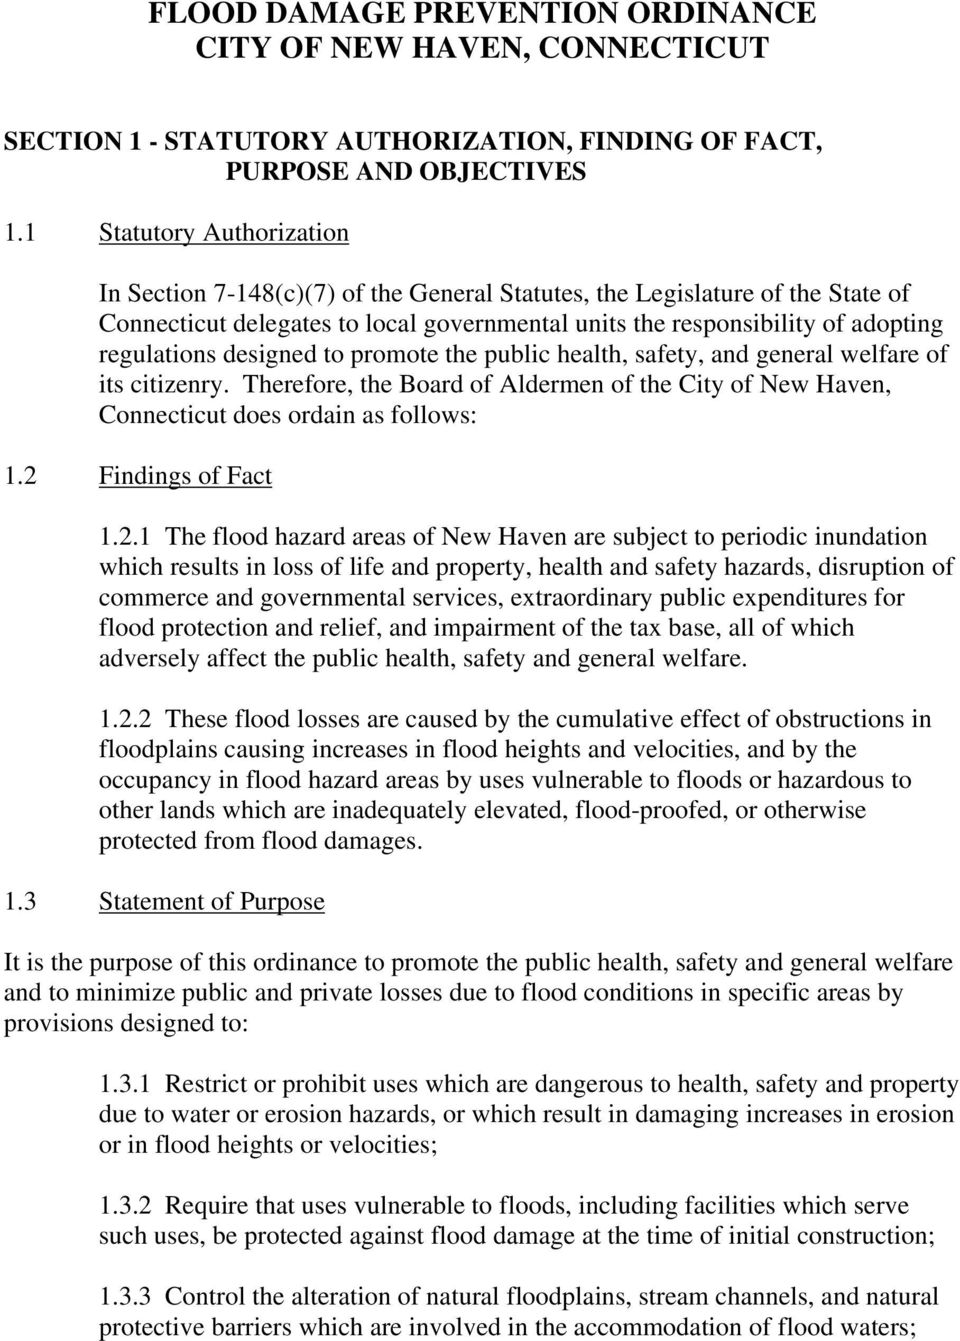 designed to promote the public health, safety, and general welfare of its citizenry. Therefore, the Board of Aldermen of the City of New Haven, Connecticut does ordain as follows: 1.